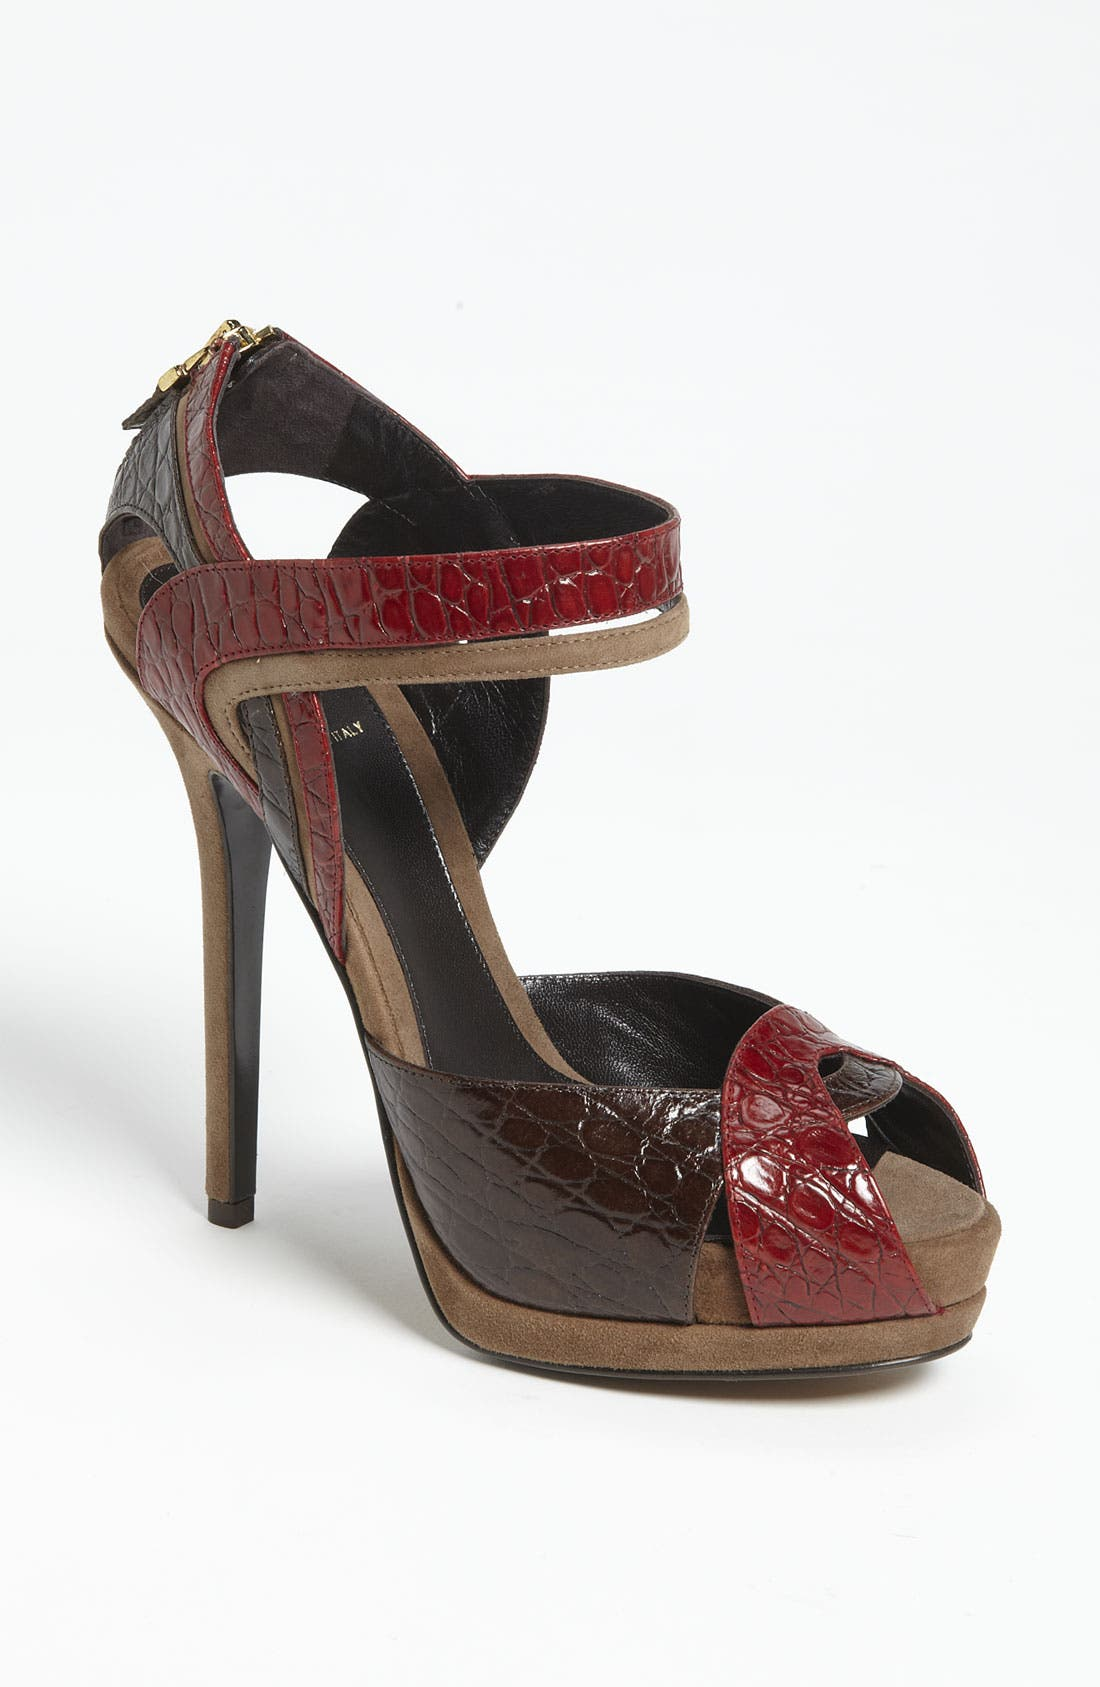 Alternate Image 1 Selected - Fendi 'Let Me In' Ankle Strap Sandal